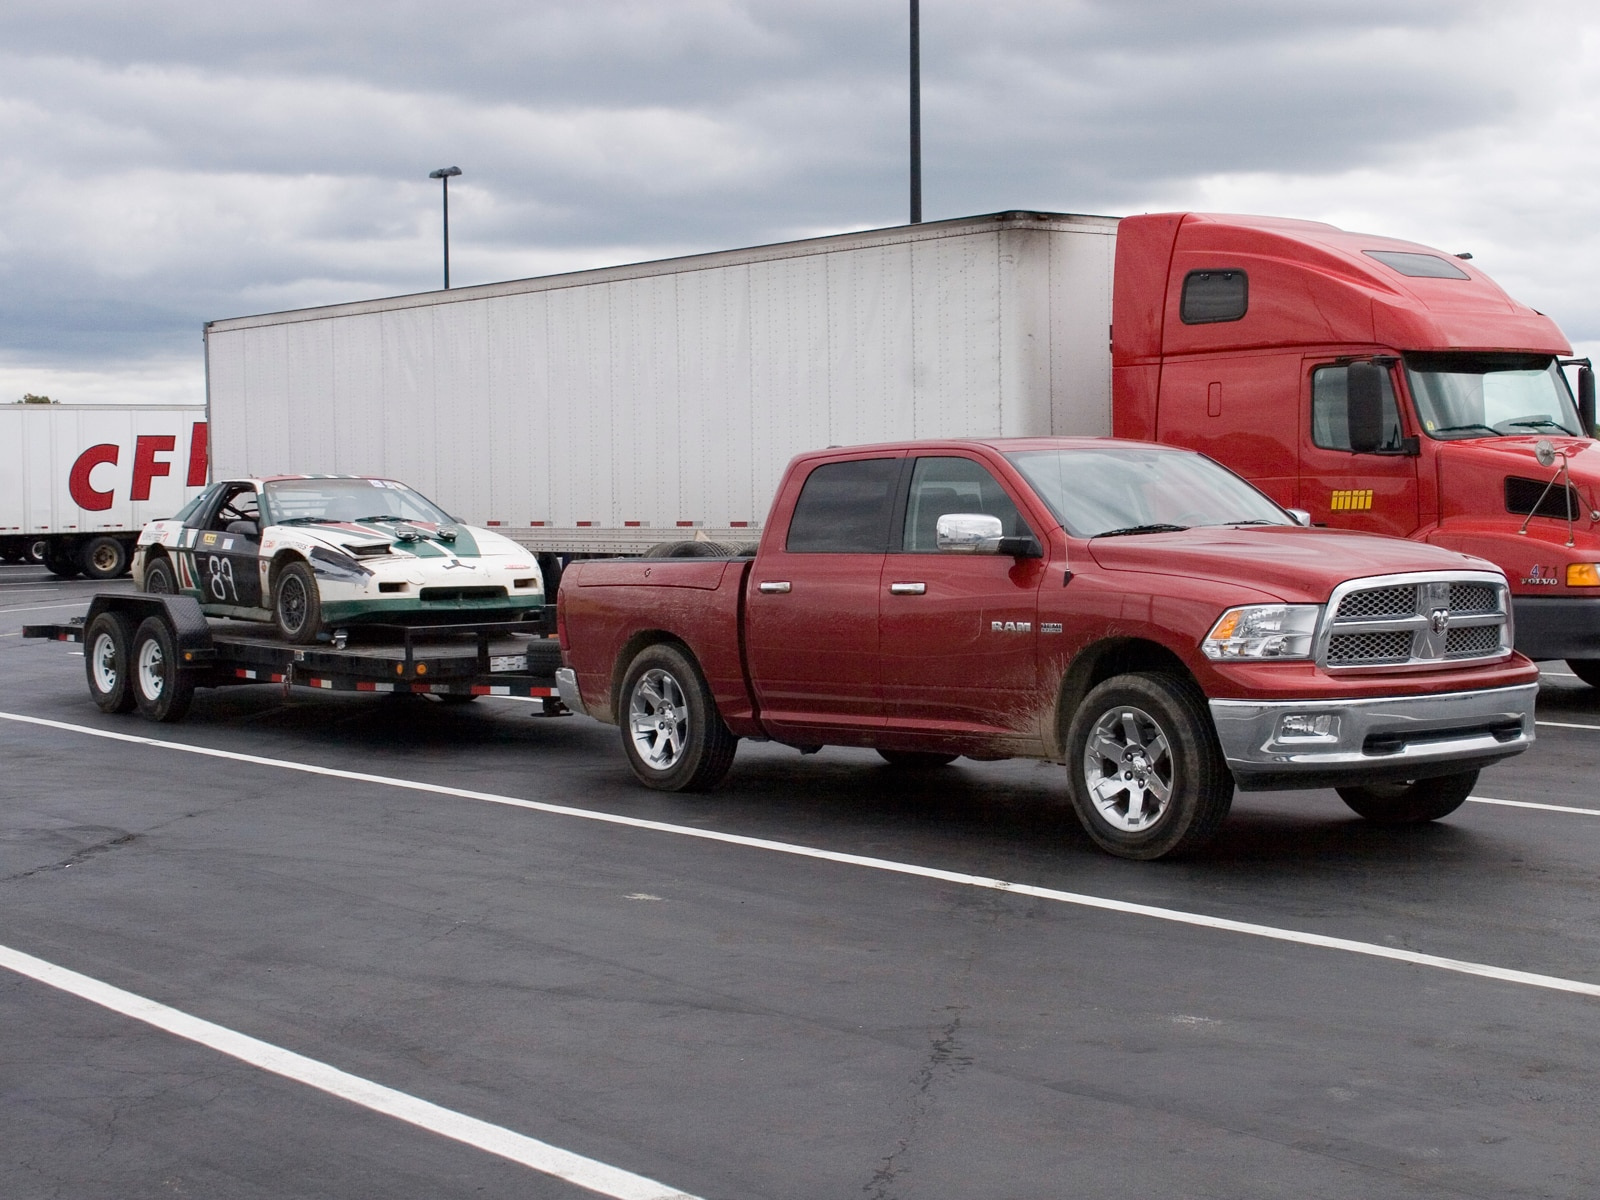 Dodge ram 1500 towing capacity 2009 dodge ram 1500 october 2009 four seasons update